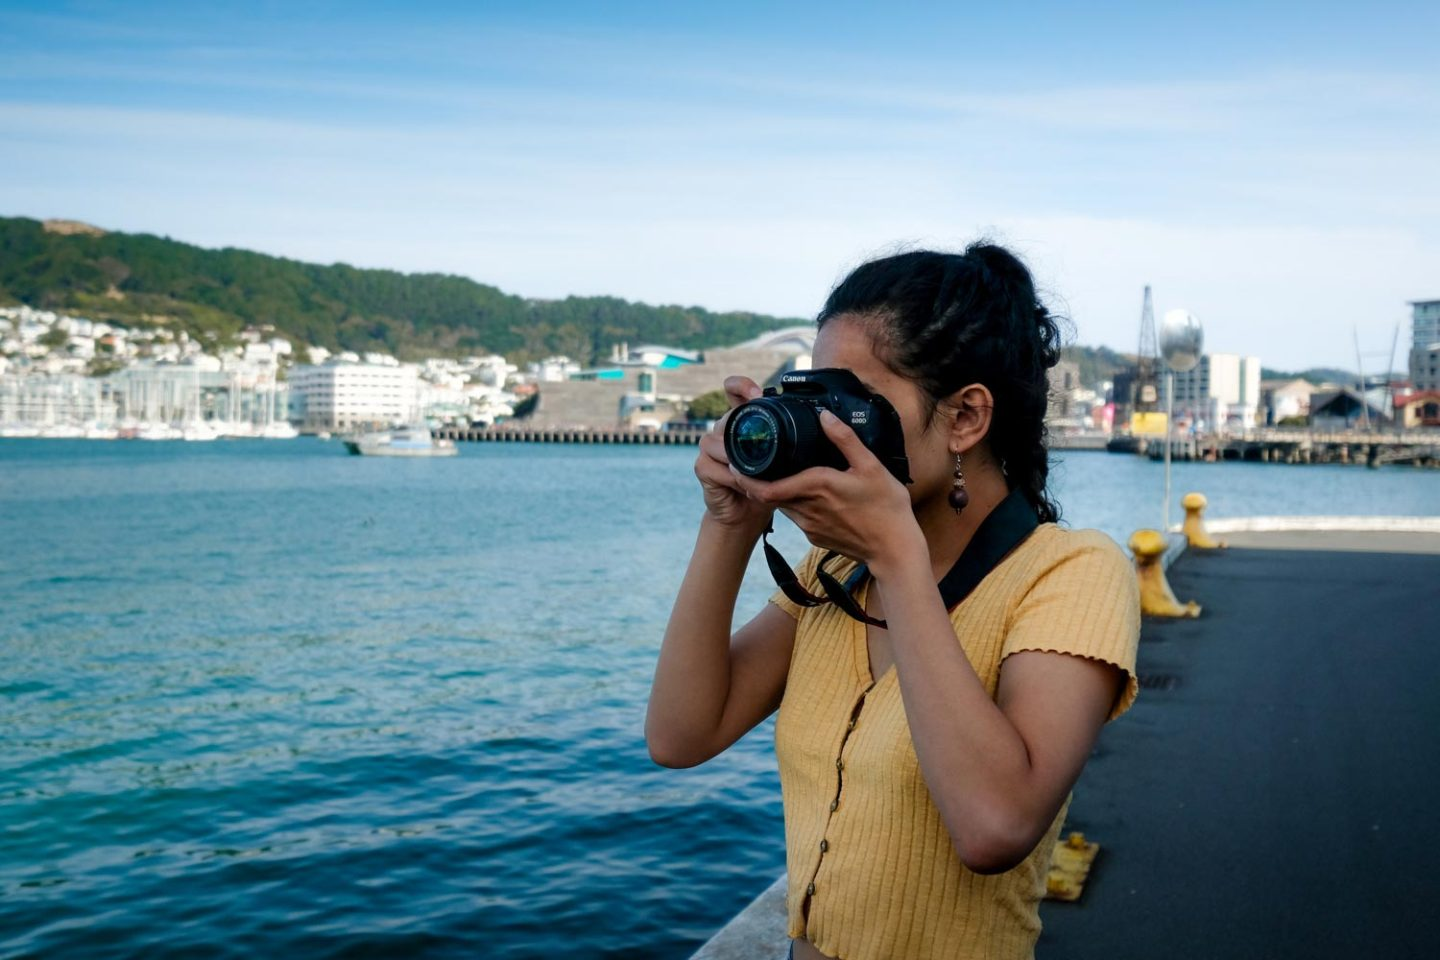 A young women taking a photo with a camera while she travels around the world. Someone who could benefit from this list of must-have photography accessories.